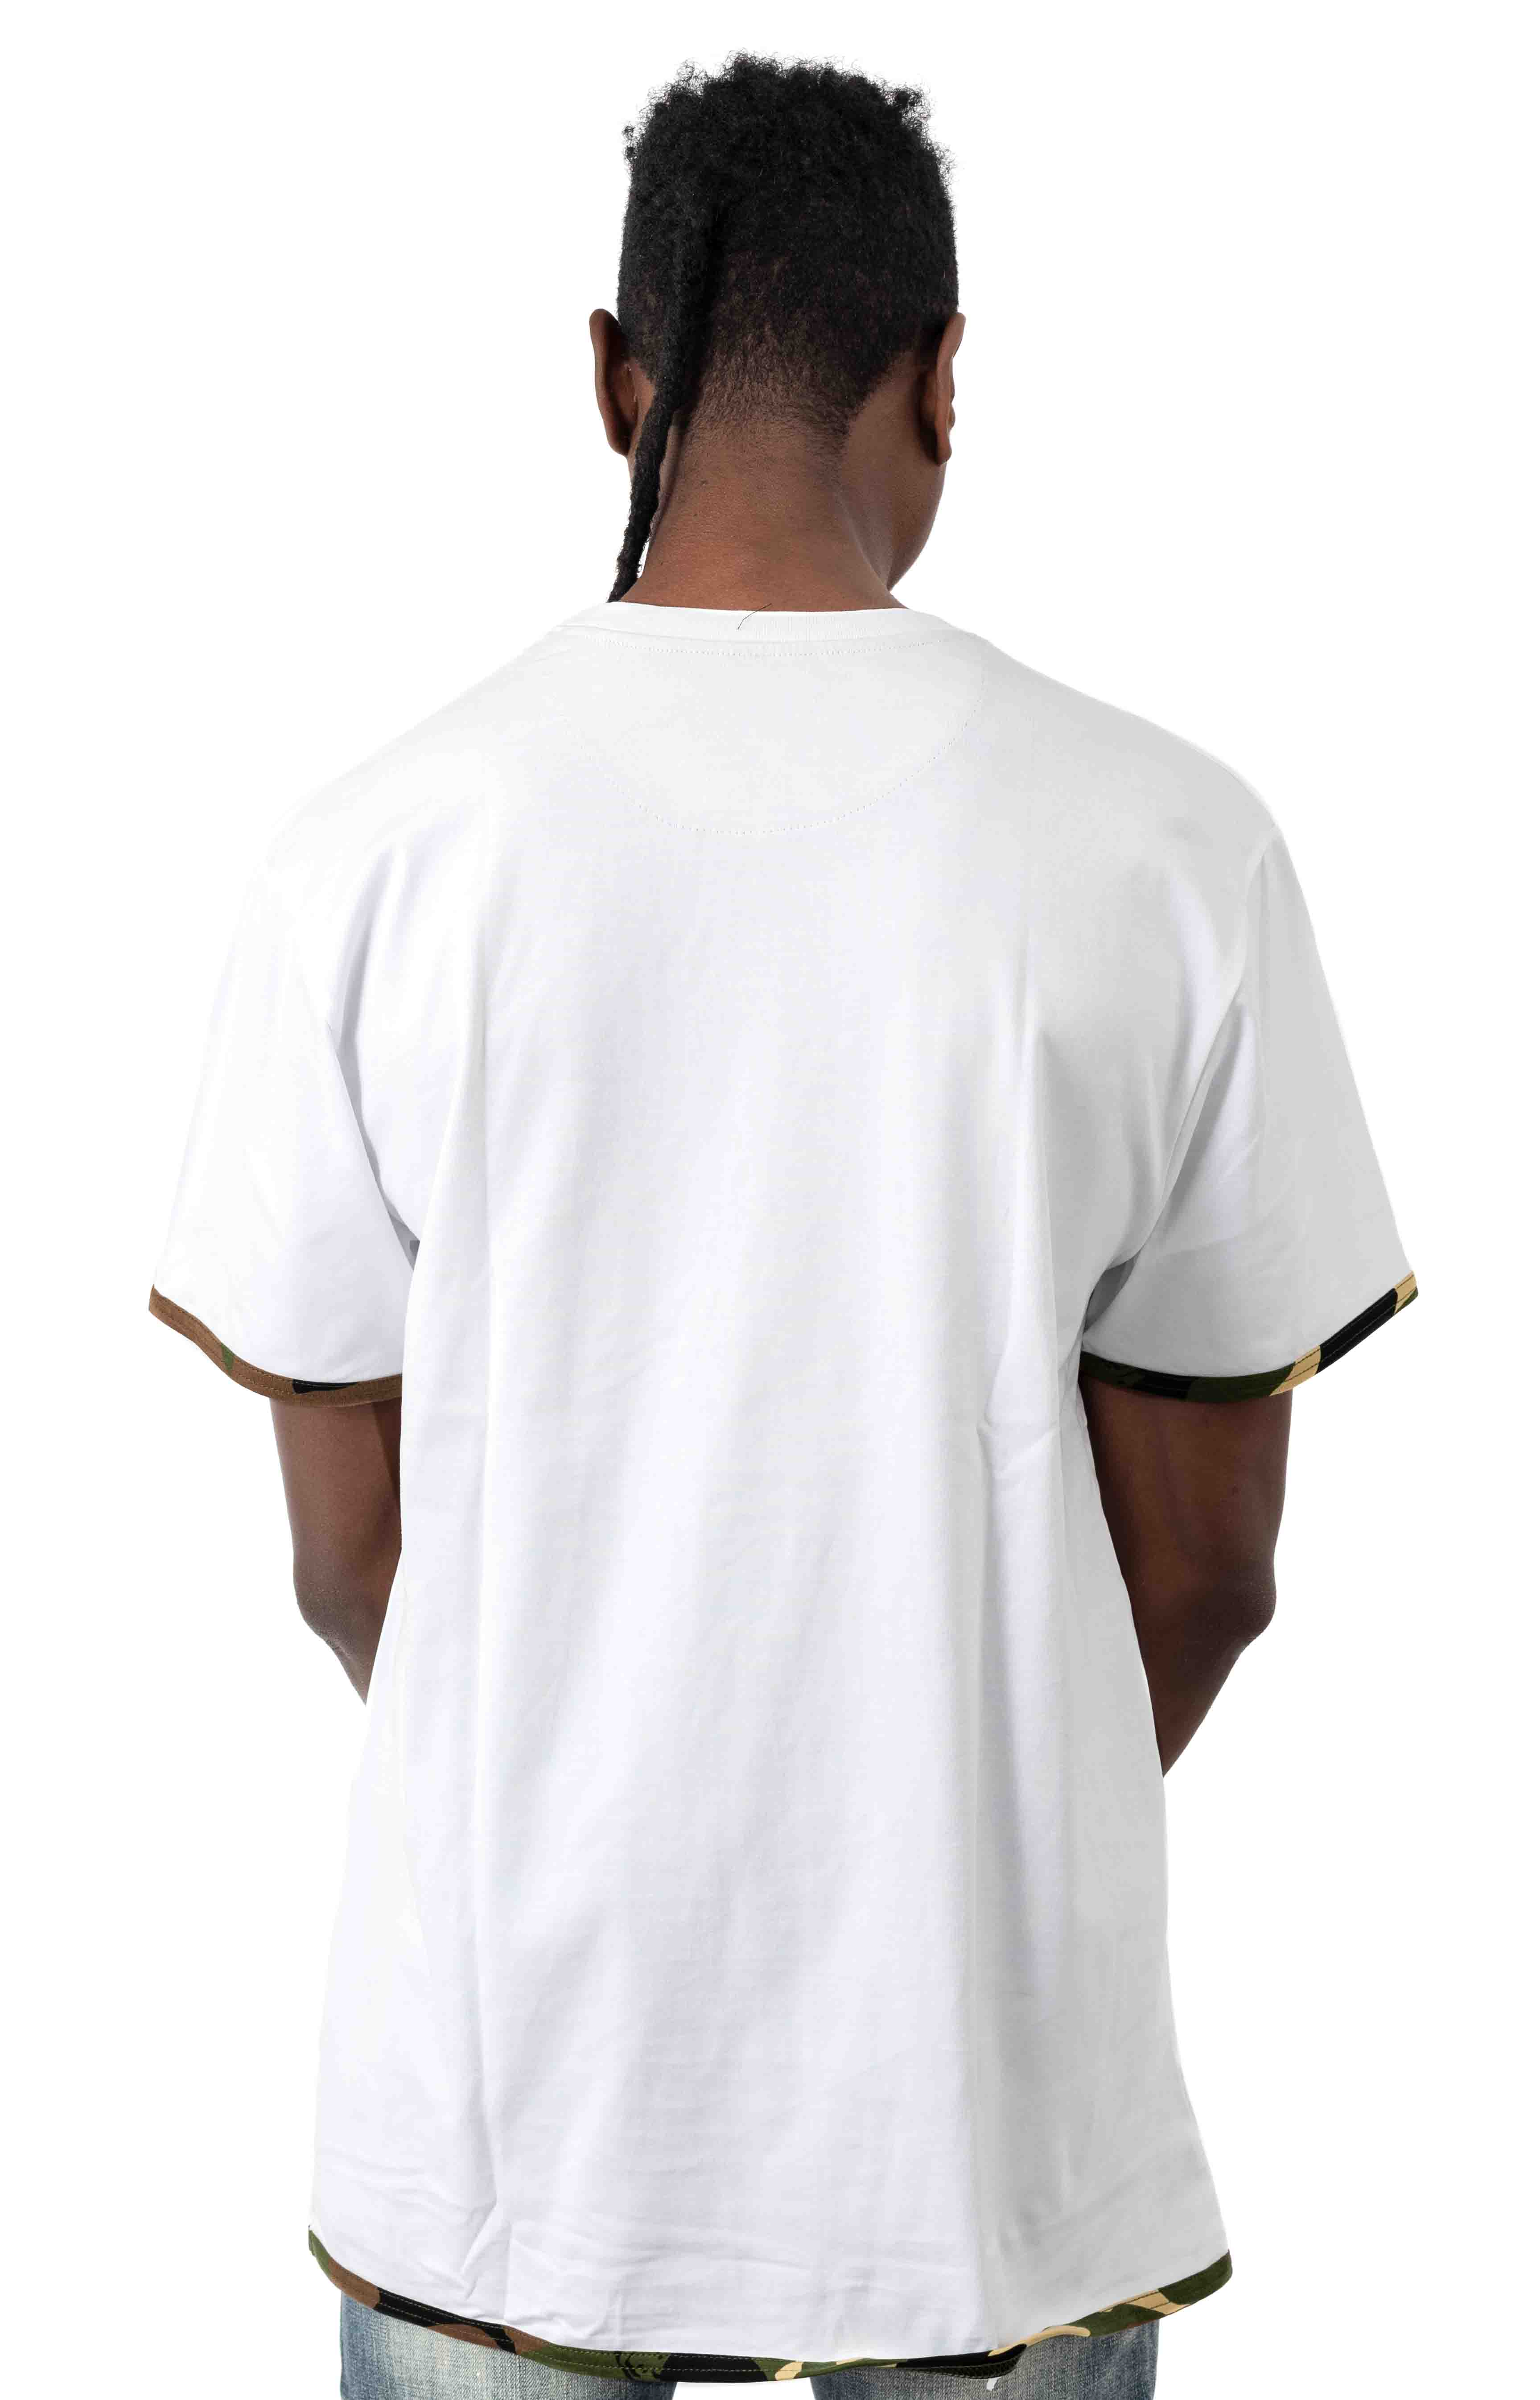 BB Collective SS Knit T-Shirt - White 3